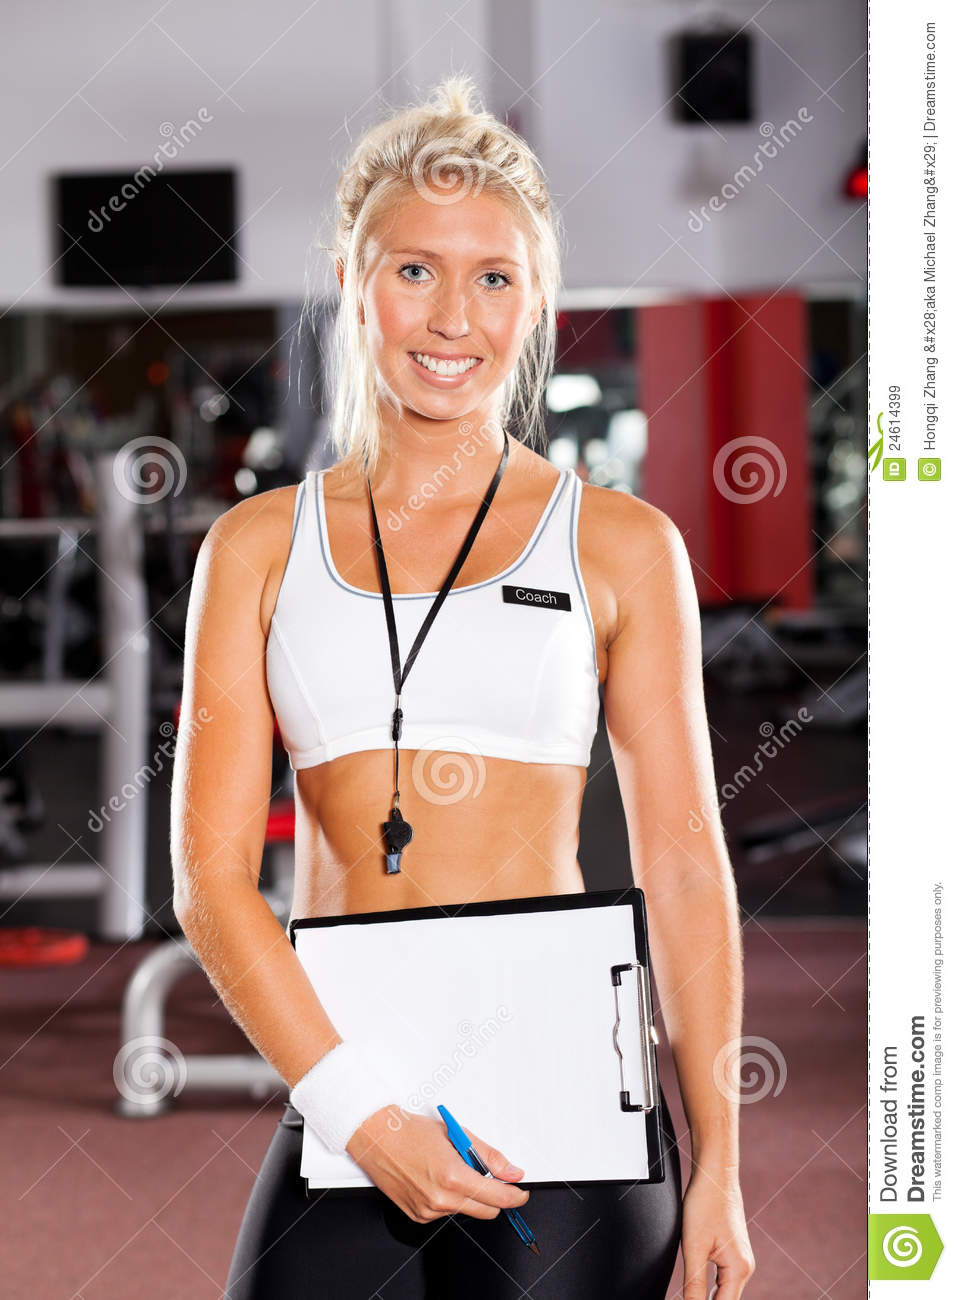 Female Sports Coach Clipart School sport coachFemale Sports Coach